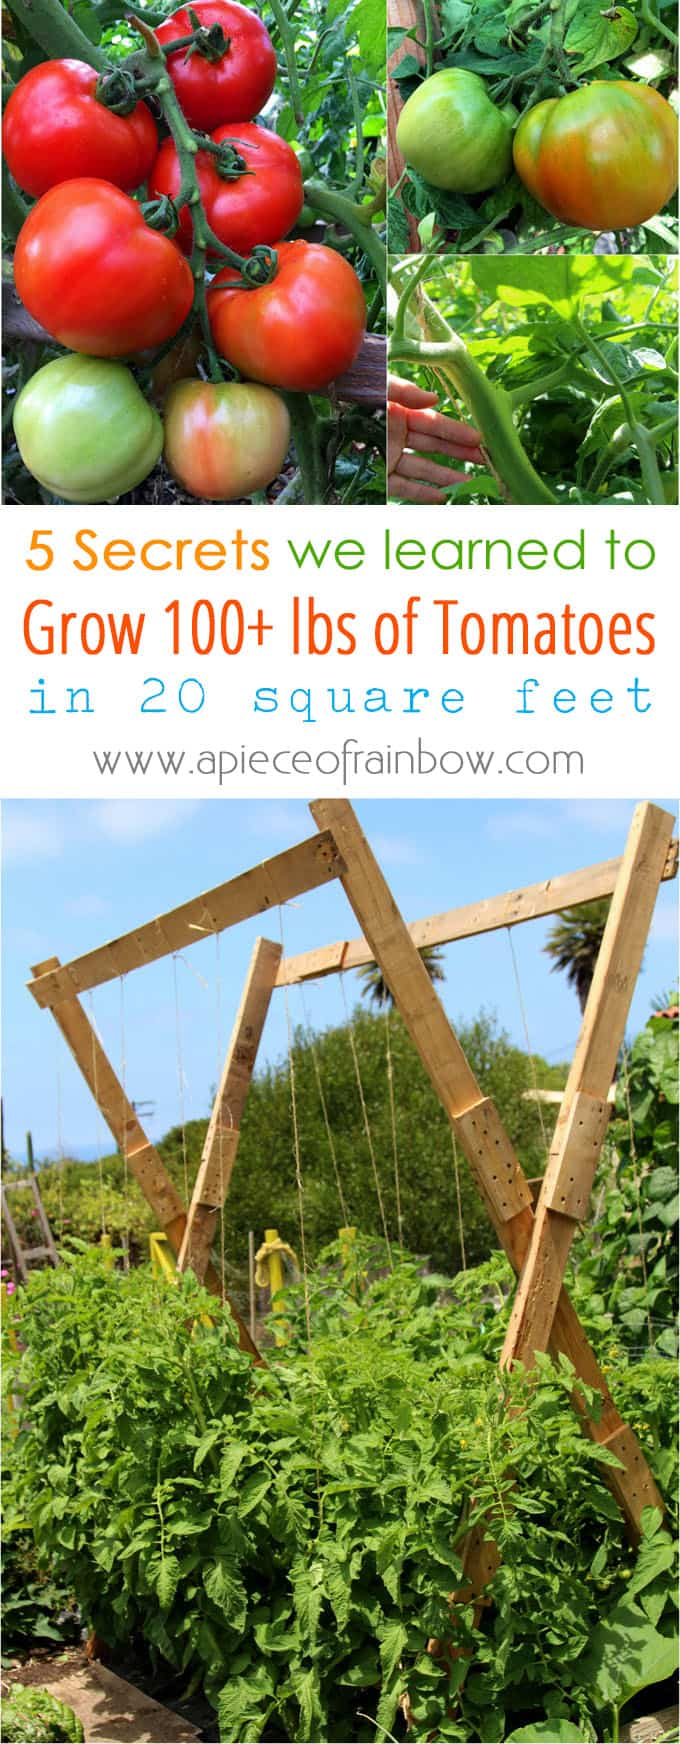 5 proven secrets we learned from experts on how to grow tomatoes & harvest over 100 lbs in 20 square feet! Lots of care tips on soil & free trellis plan!